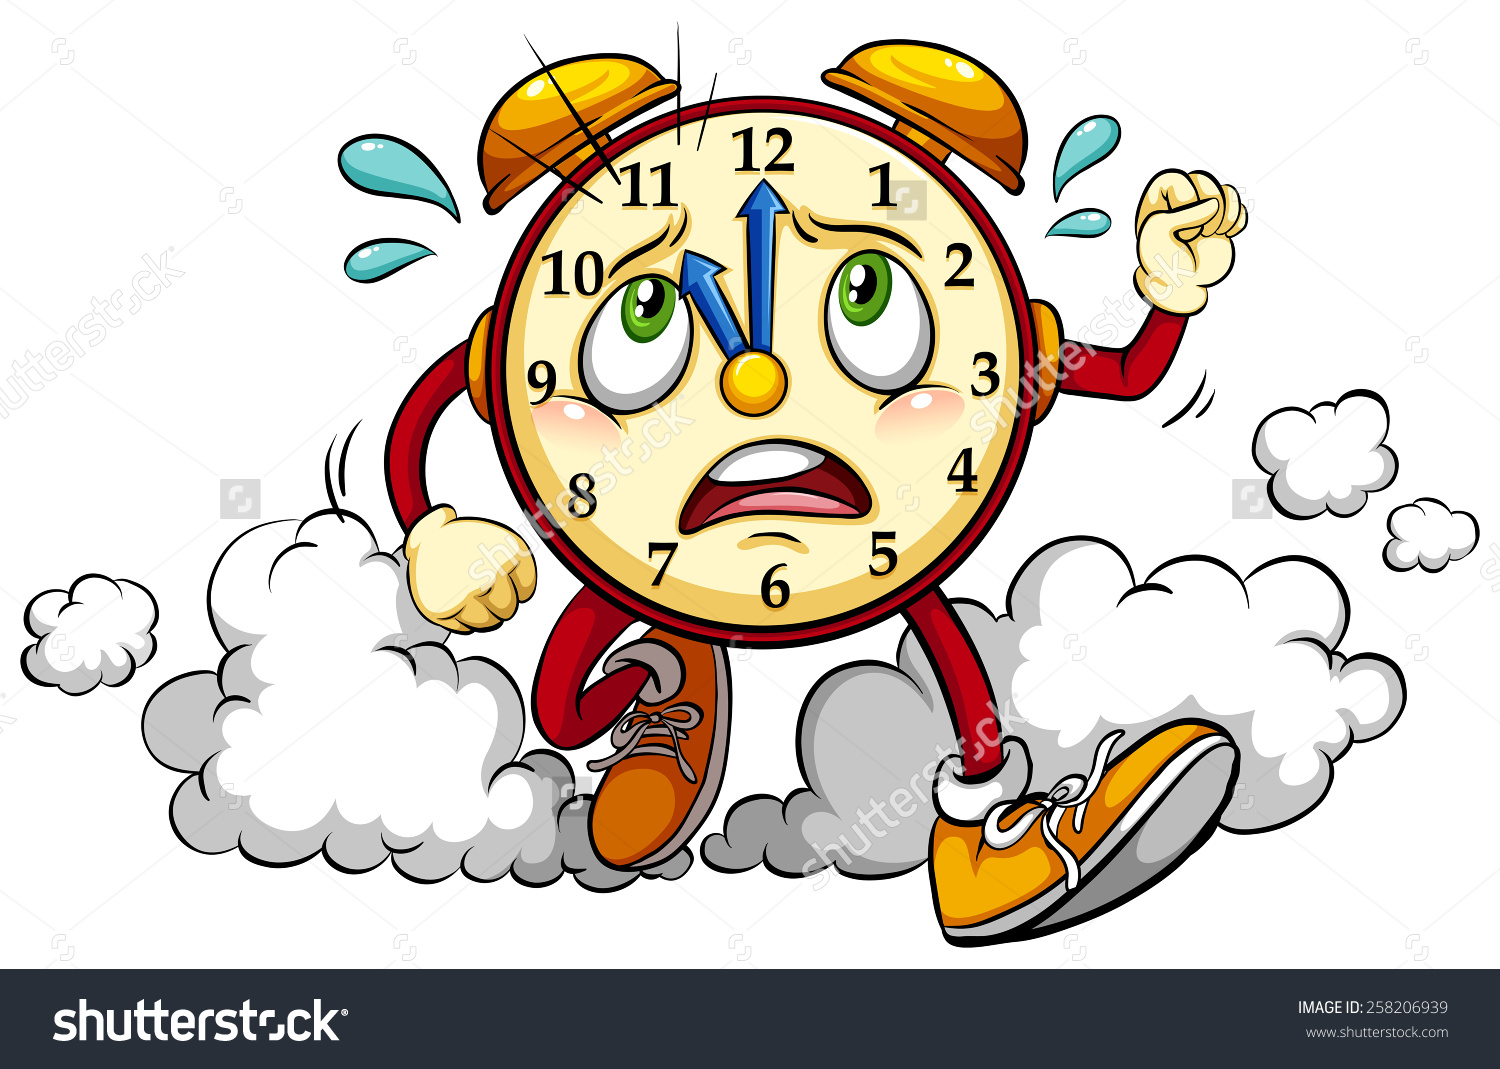 The eleventh hour clipart #18